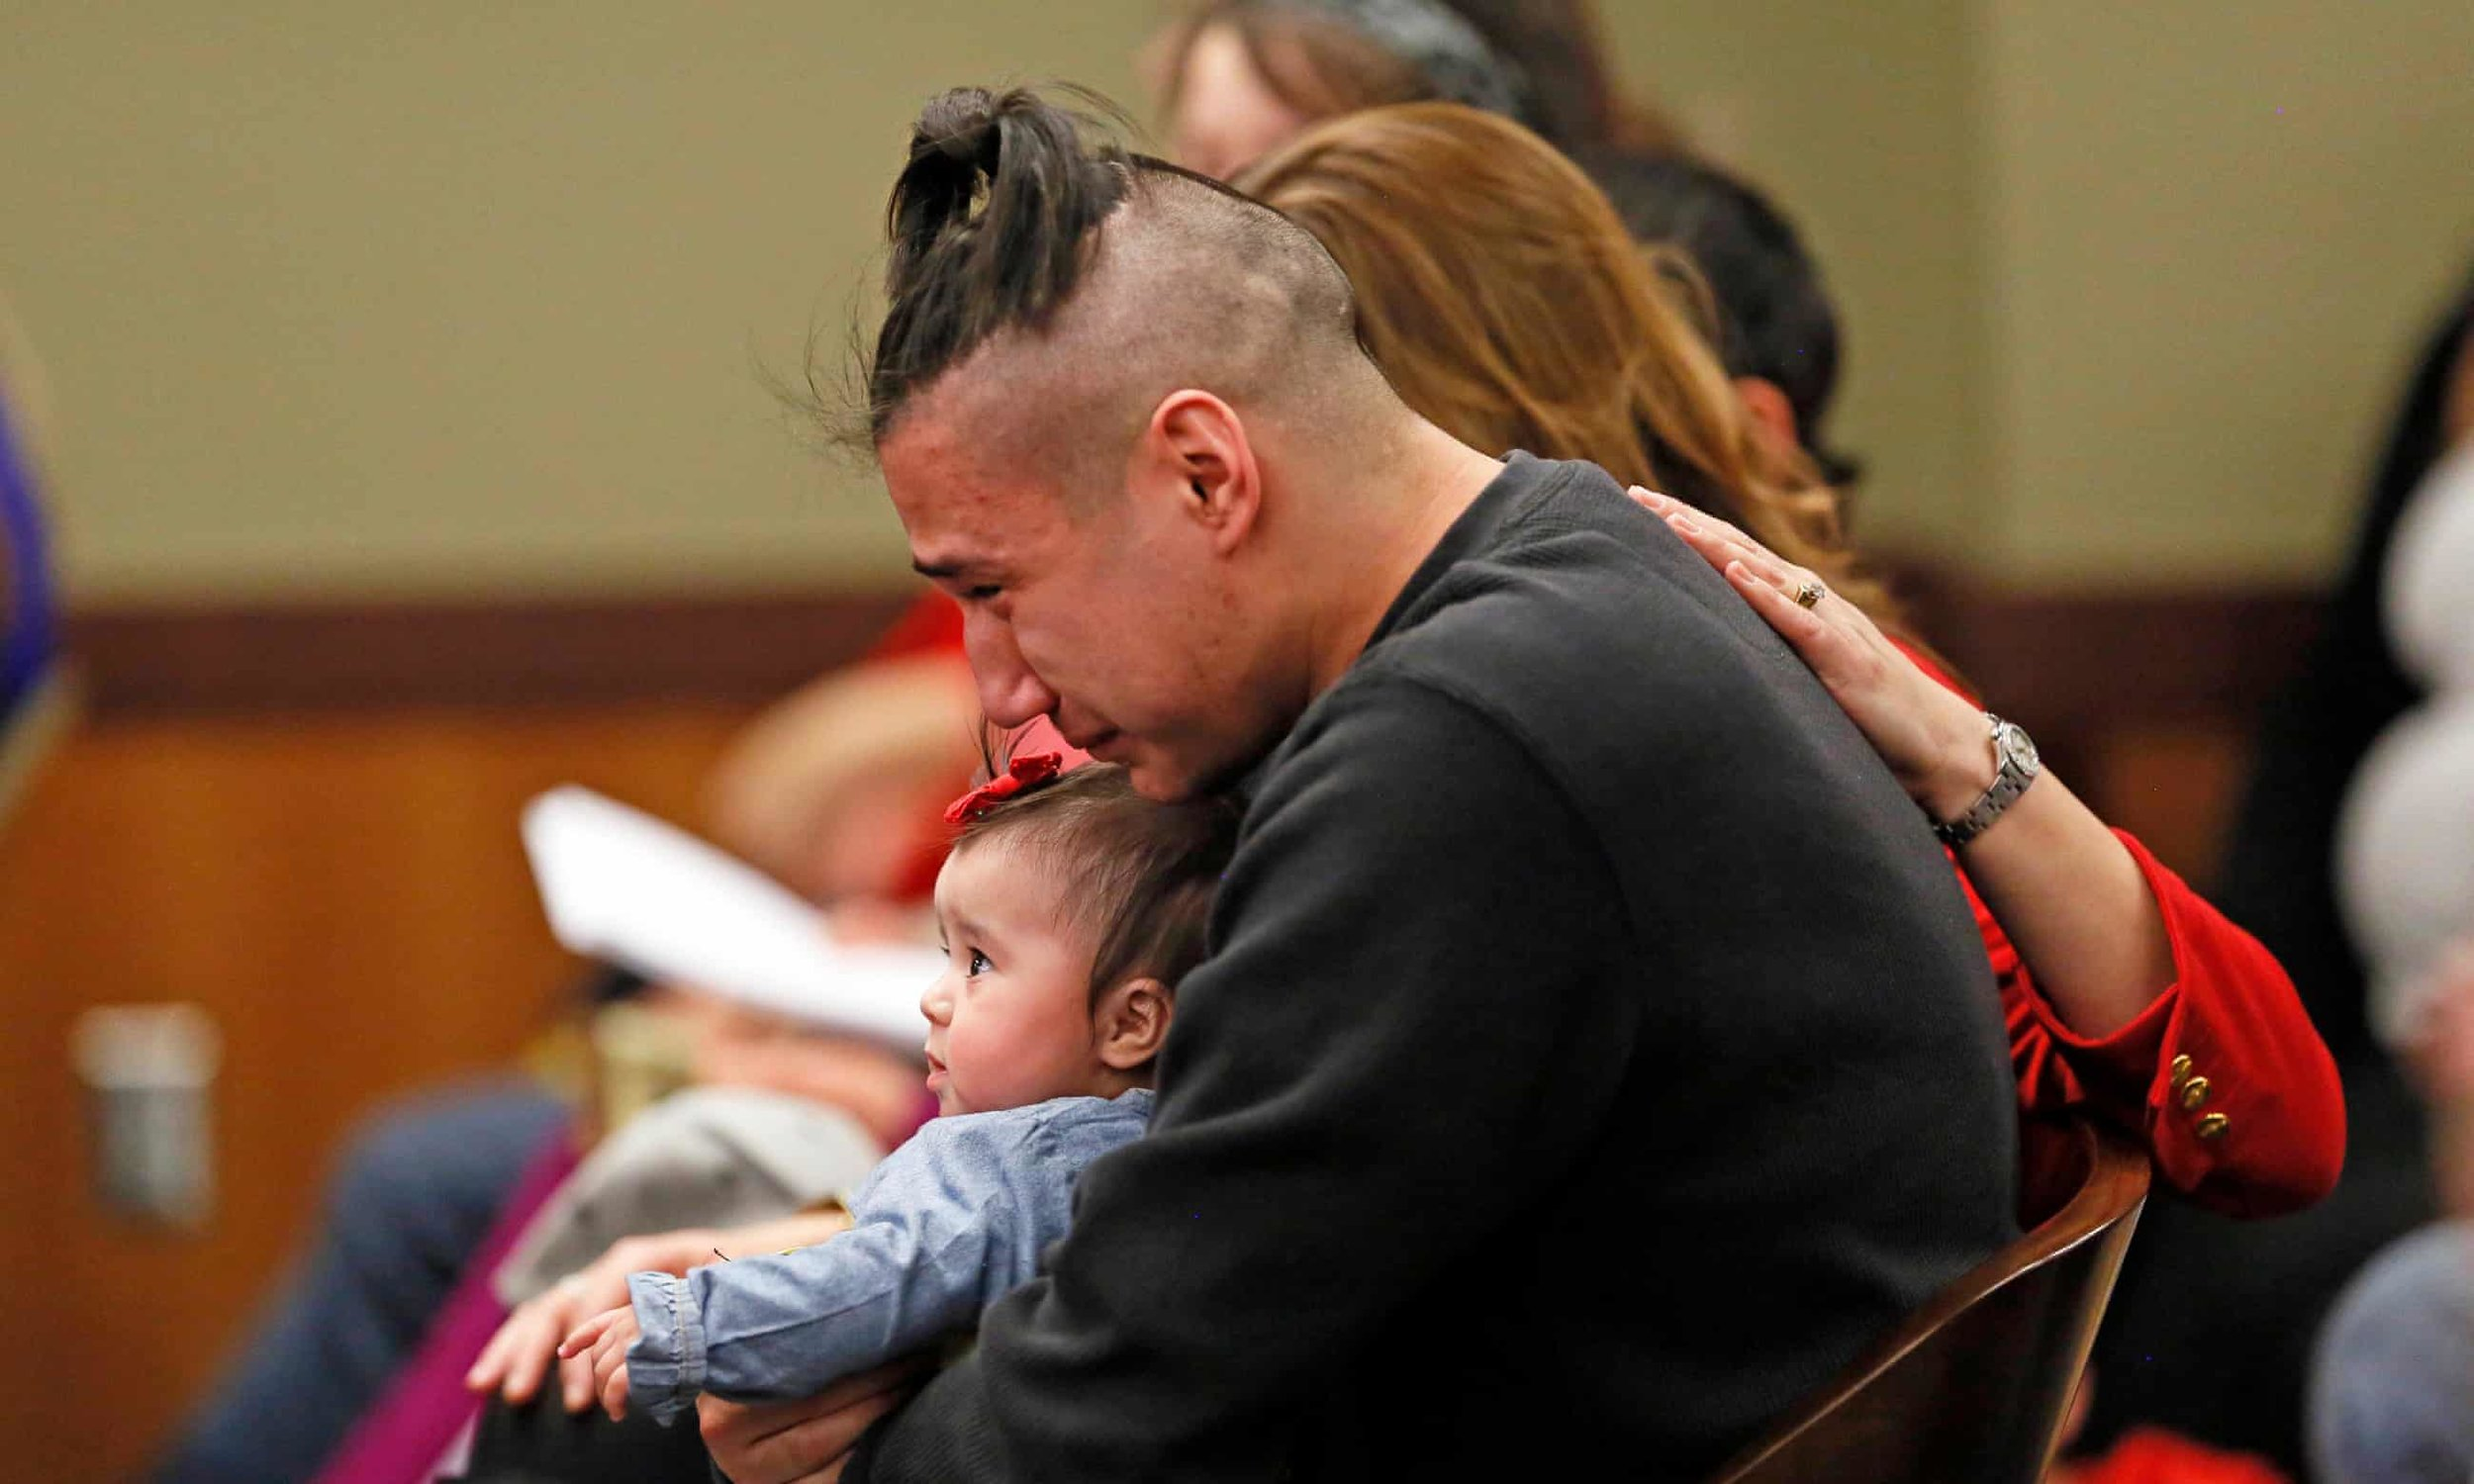 Savanna LaFontaine-Greywind's boyfriend Ashston Matheny holds their daughter, as victim impact statements are read during the sentencing of Brooke Crews. Photograph: David Samson/AP